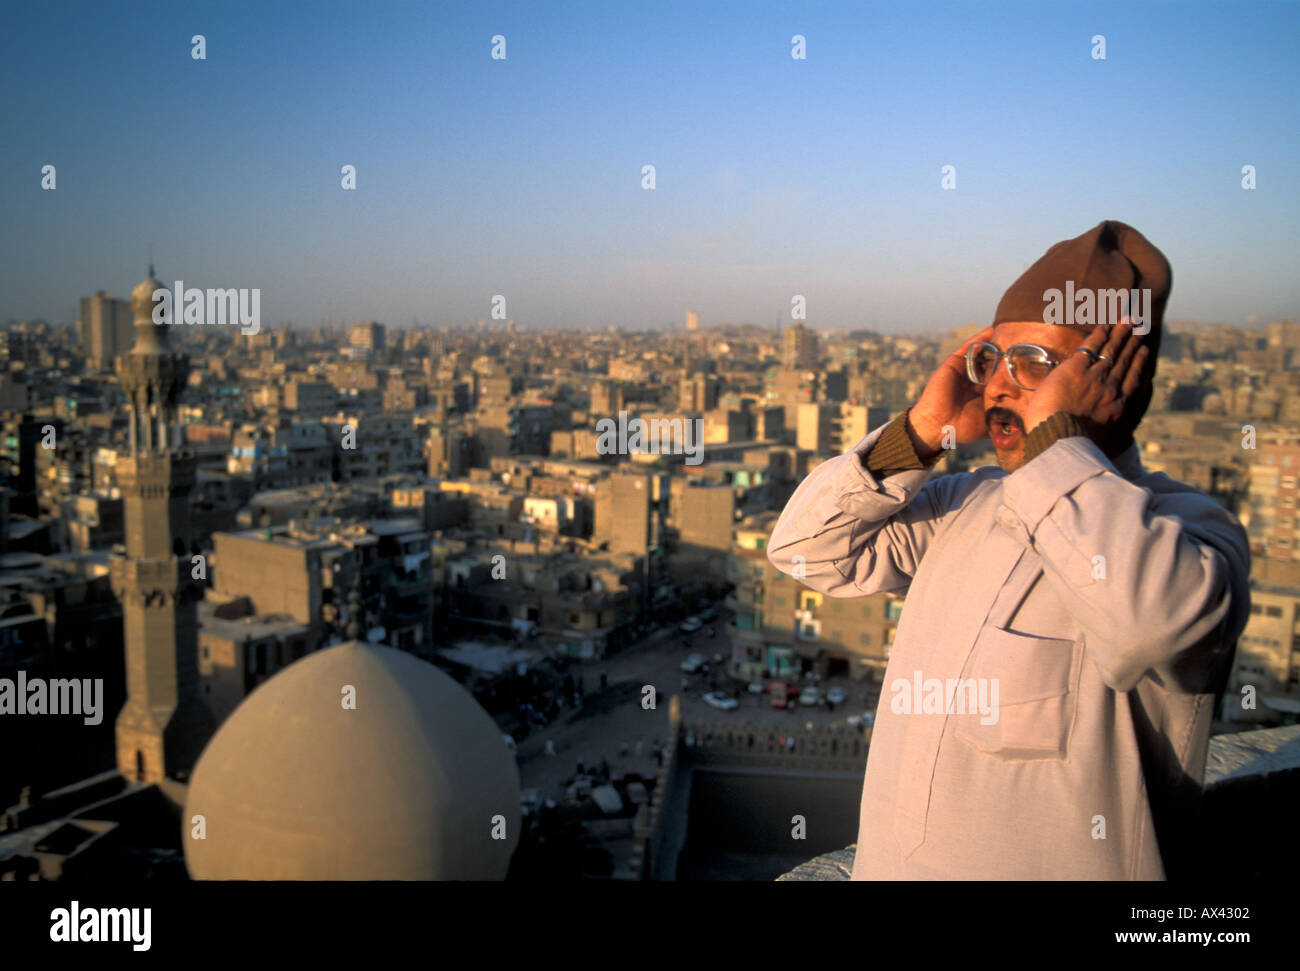 An Imam making the shahada prayer call from the Ibn Tulun Mosque ...